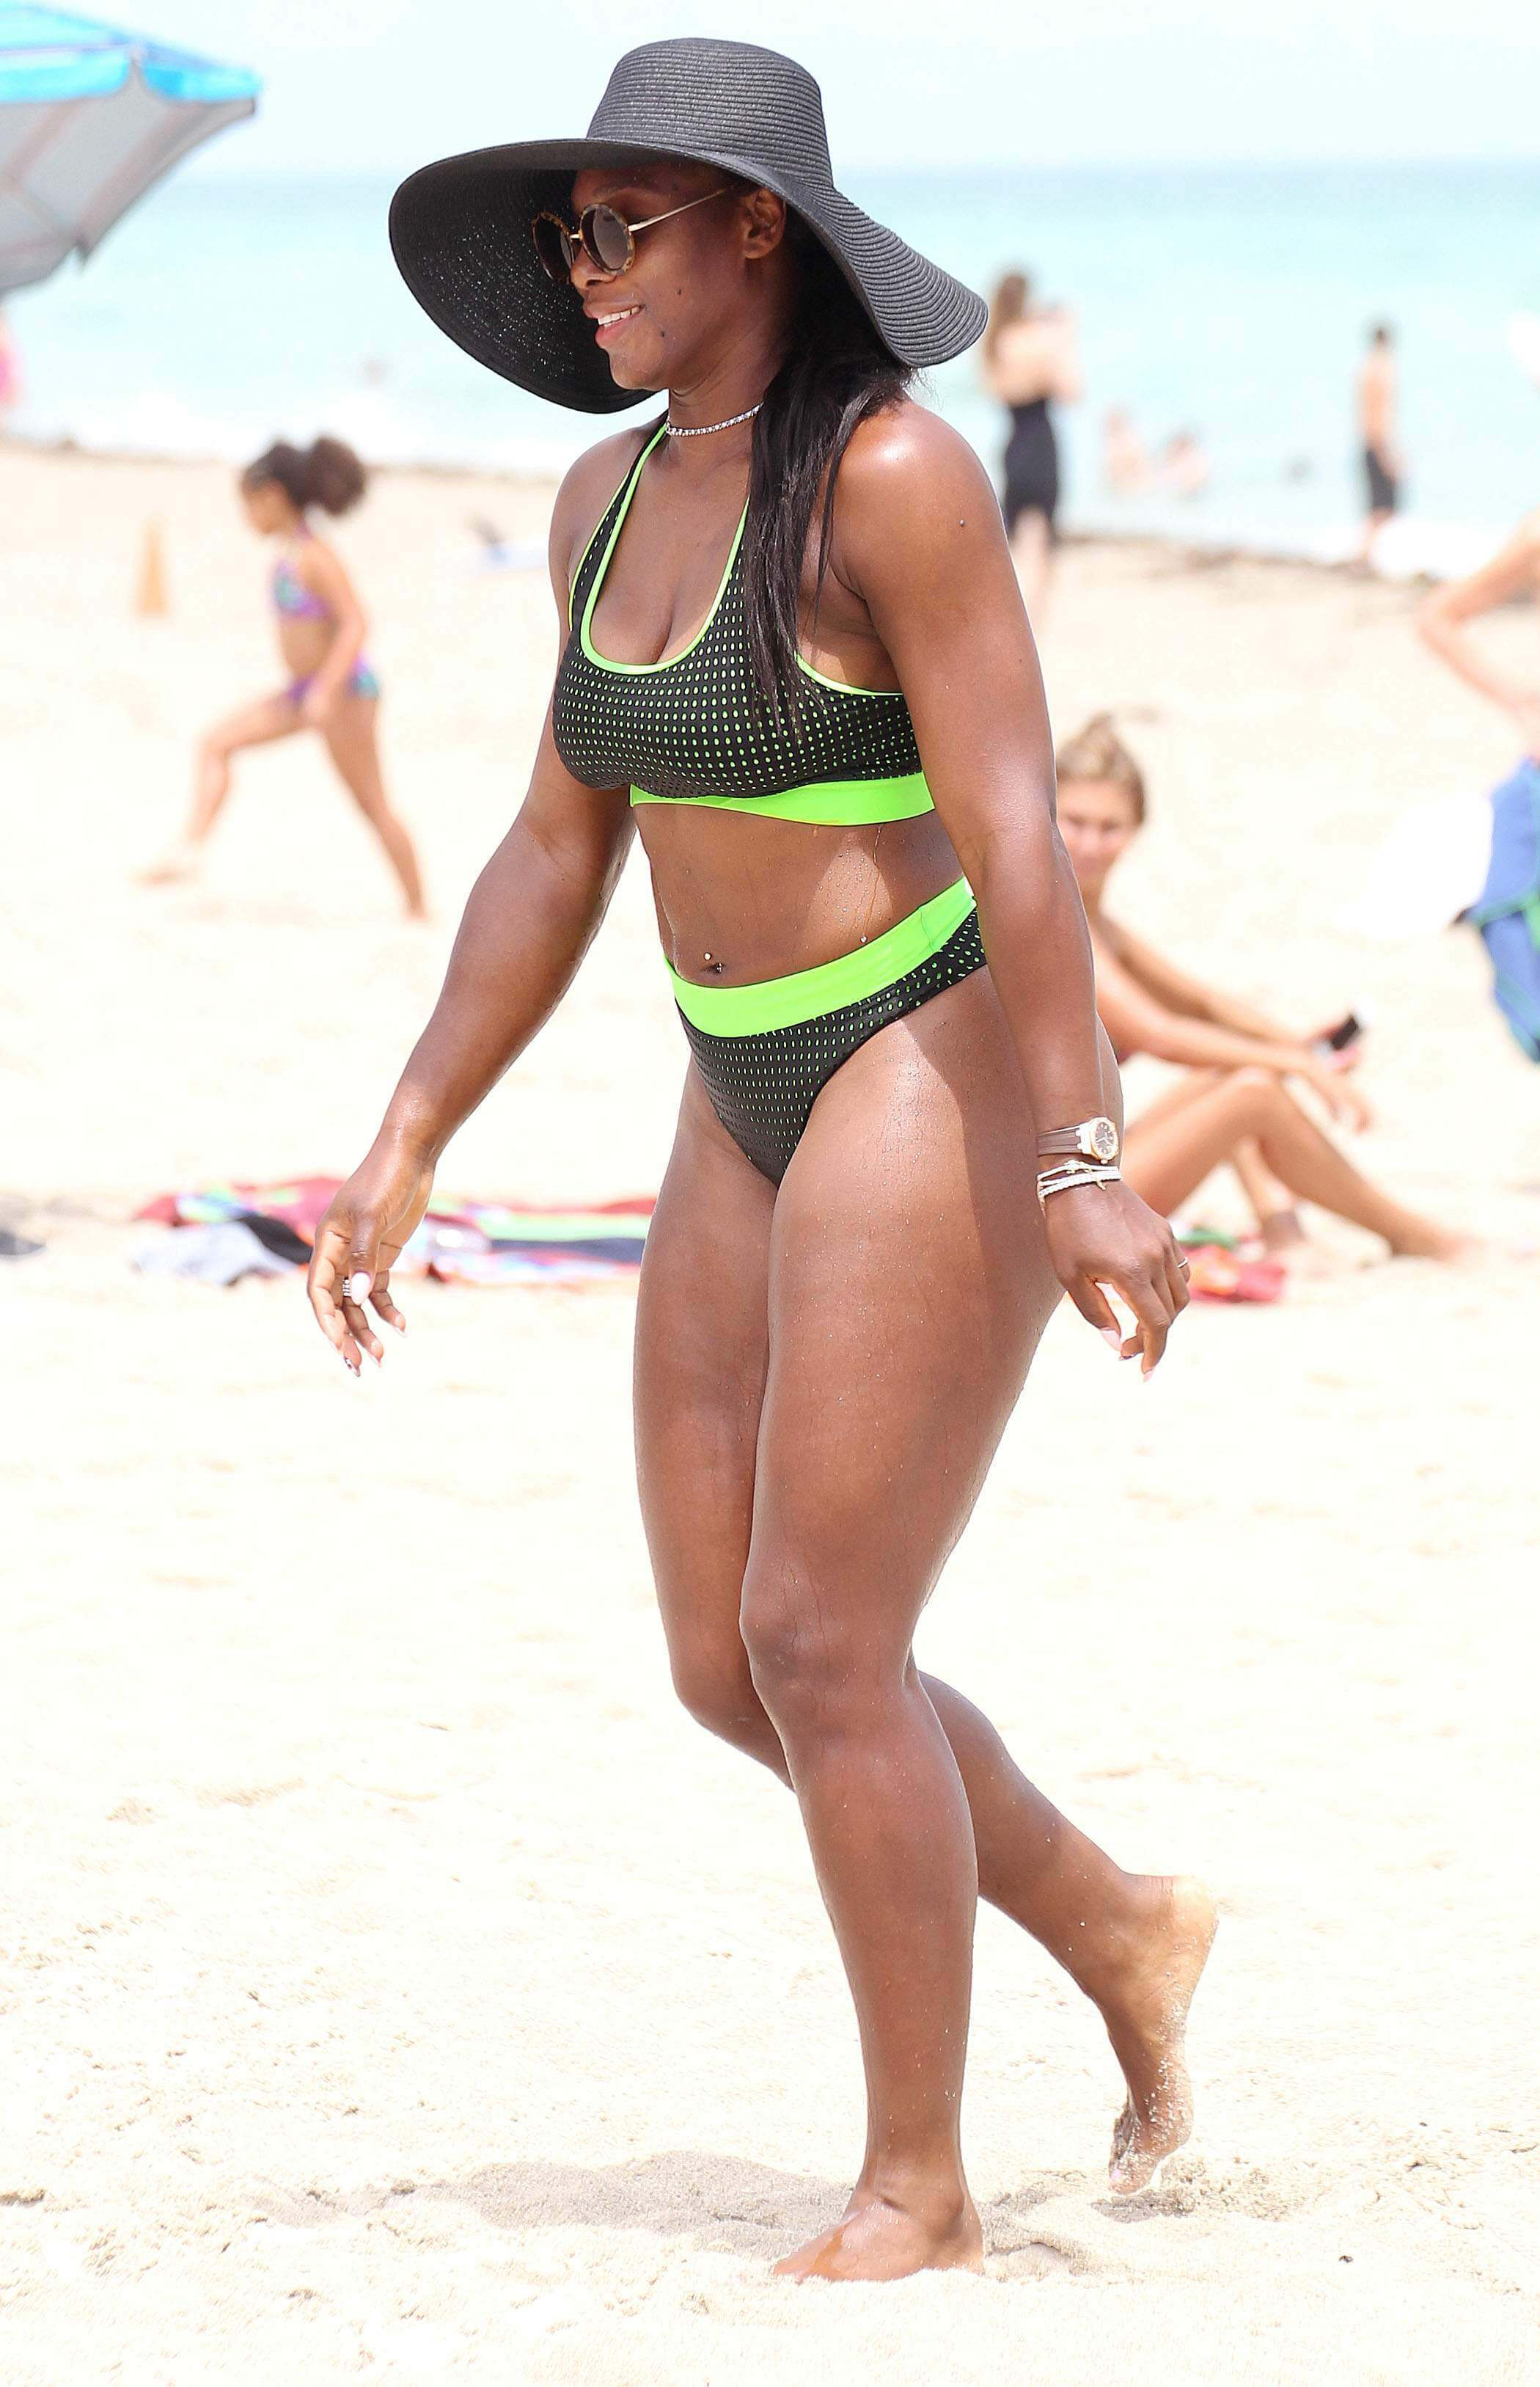 Serena Williams hot lingerie pics